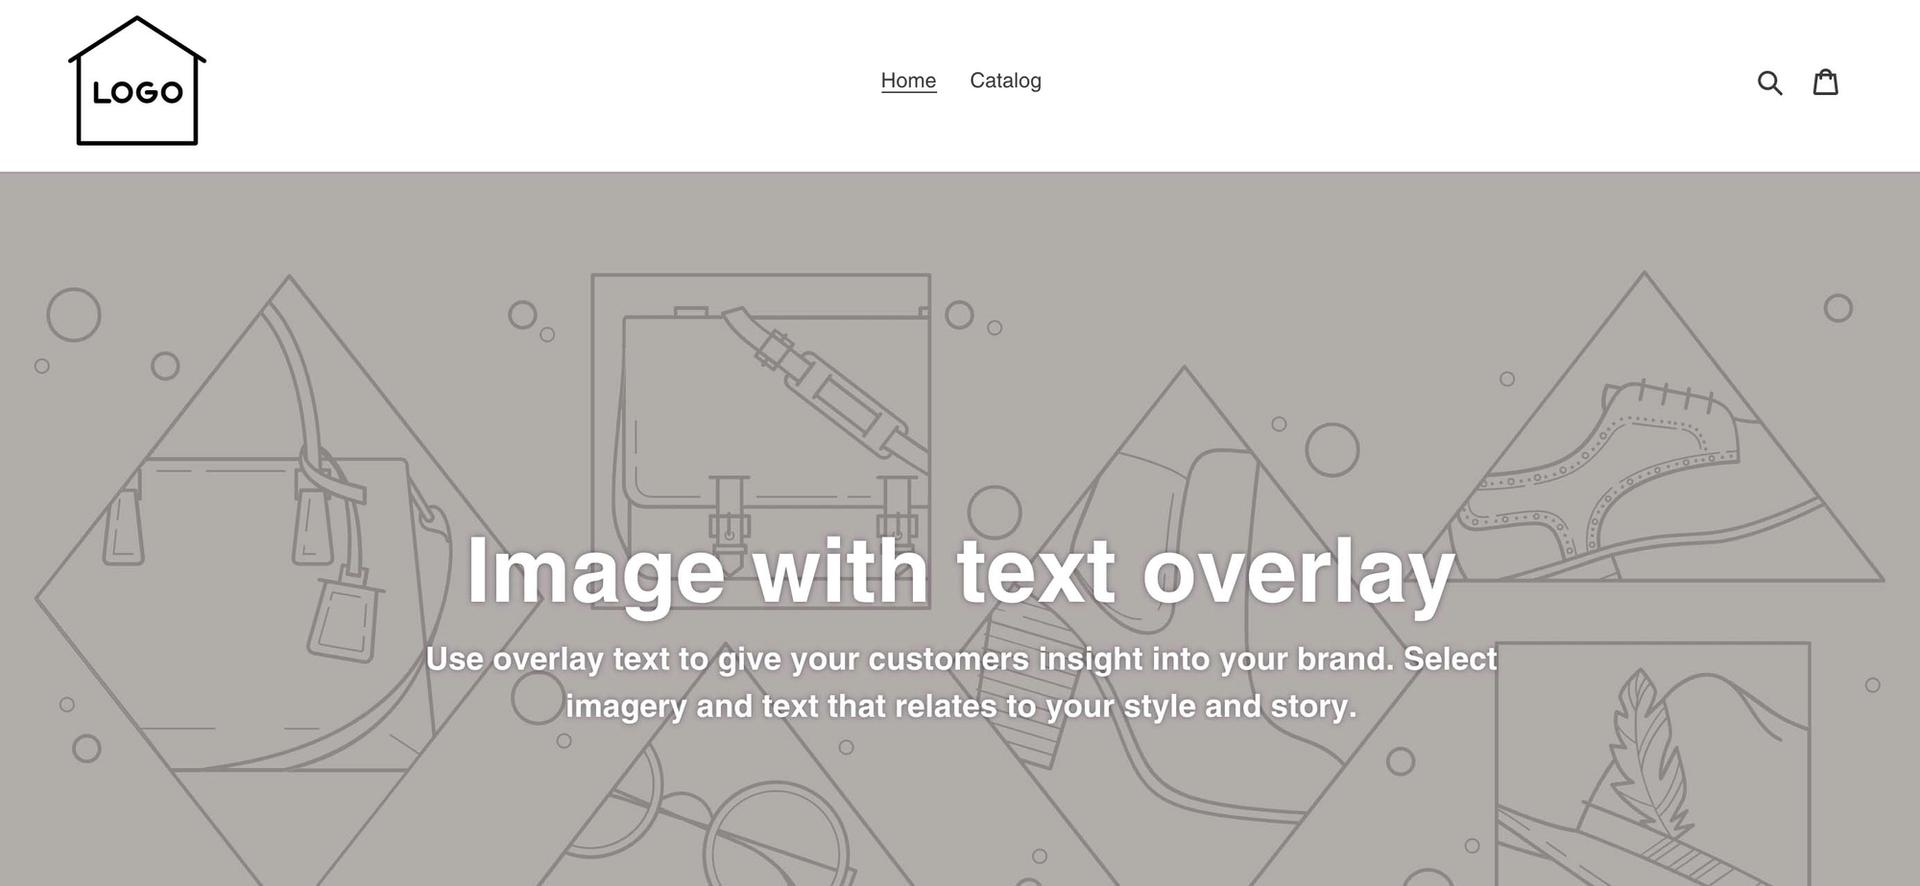 Successfully using an SVG image file for your store's logo